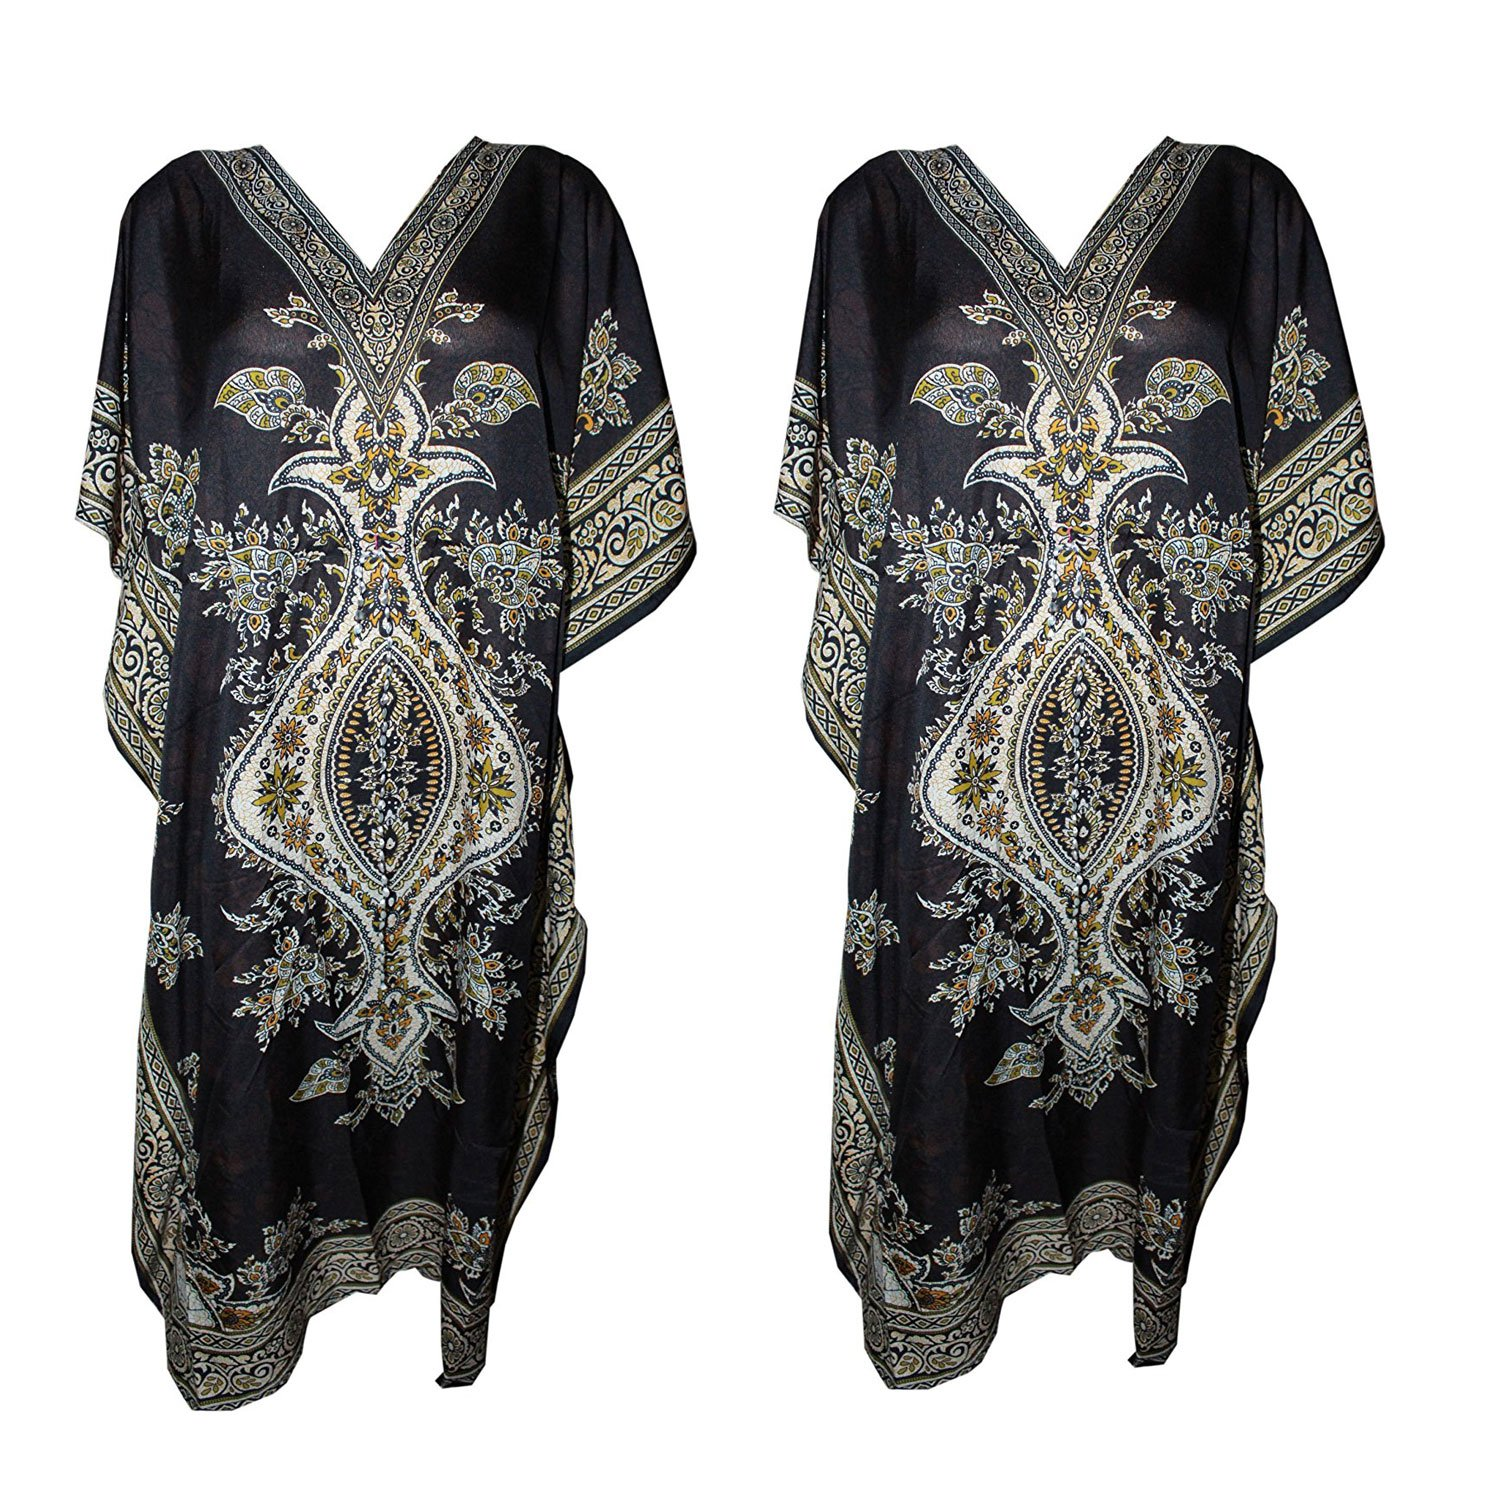 Odishabazaar Caftan Dress Long Maxi Boho Kaftan Cover up with Drawstring Waist pl-3203